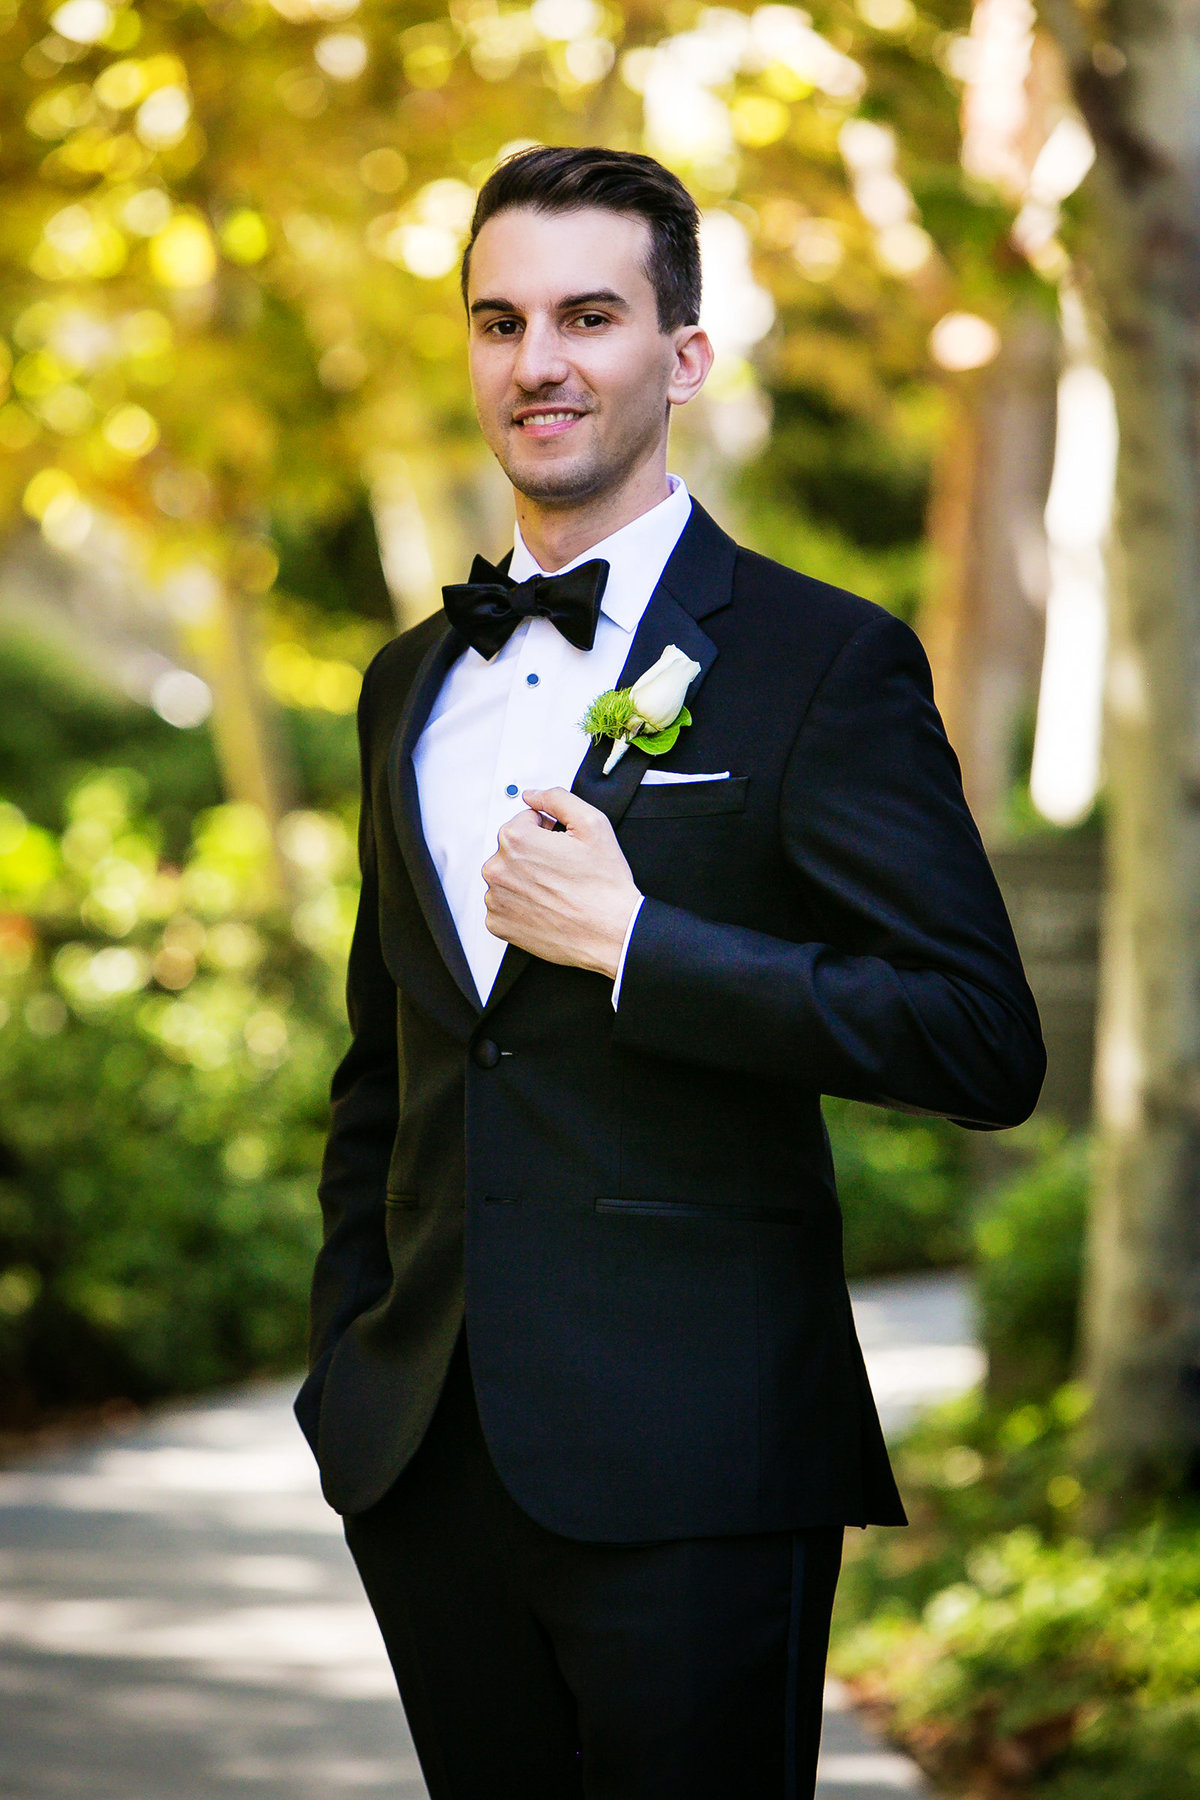 060-skirball-cultural-center-wedding-photos-rebecca-ben